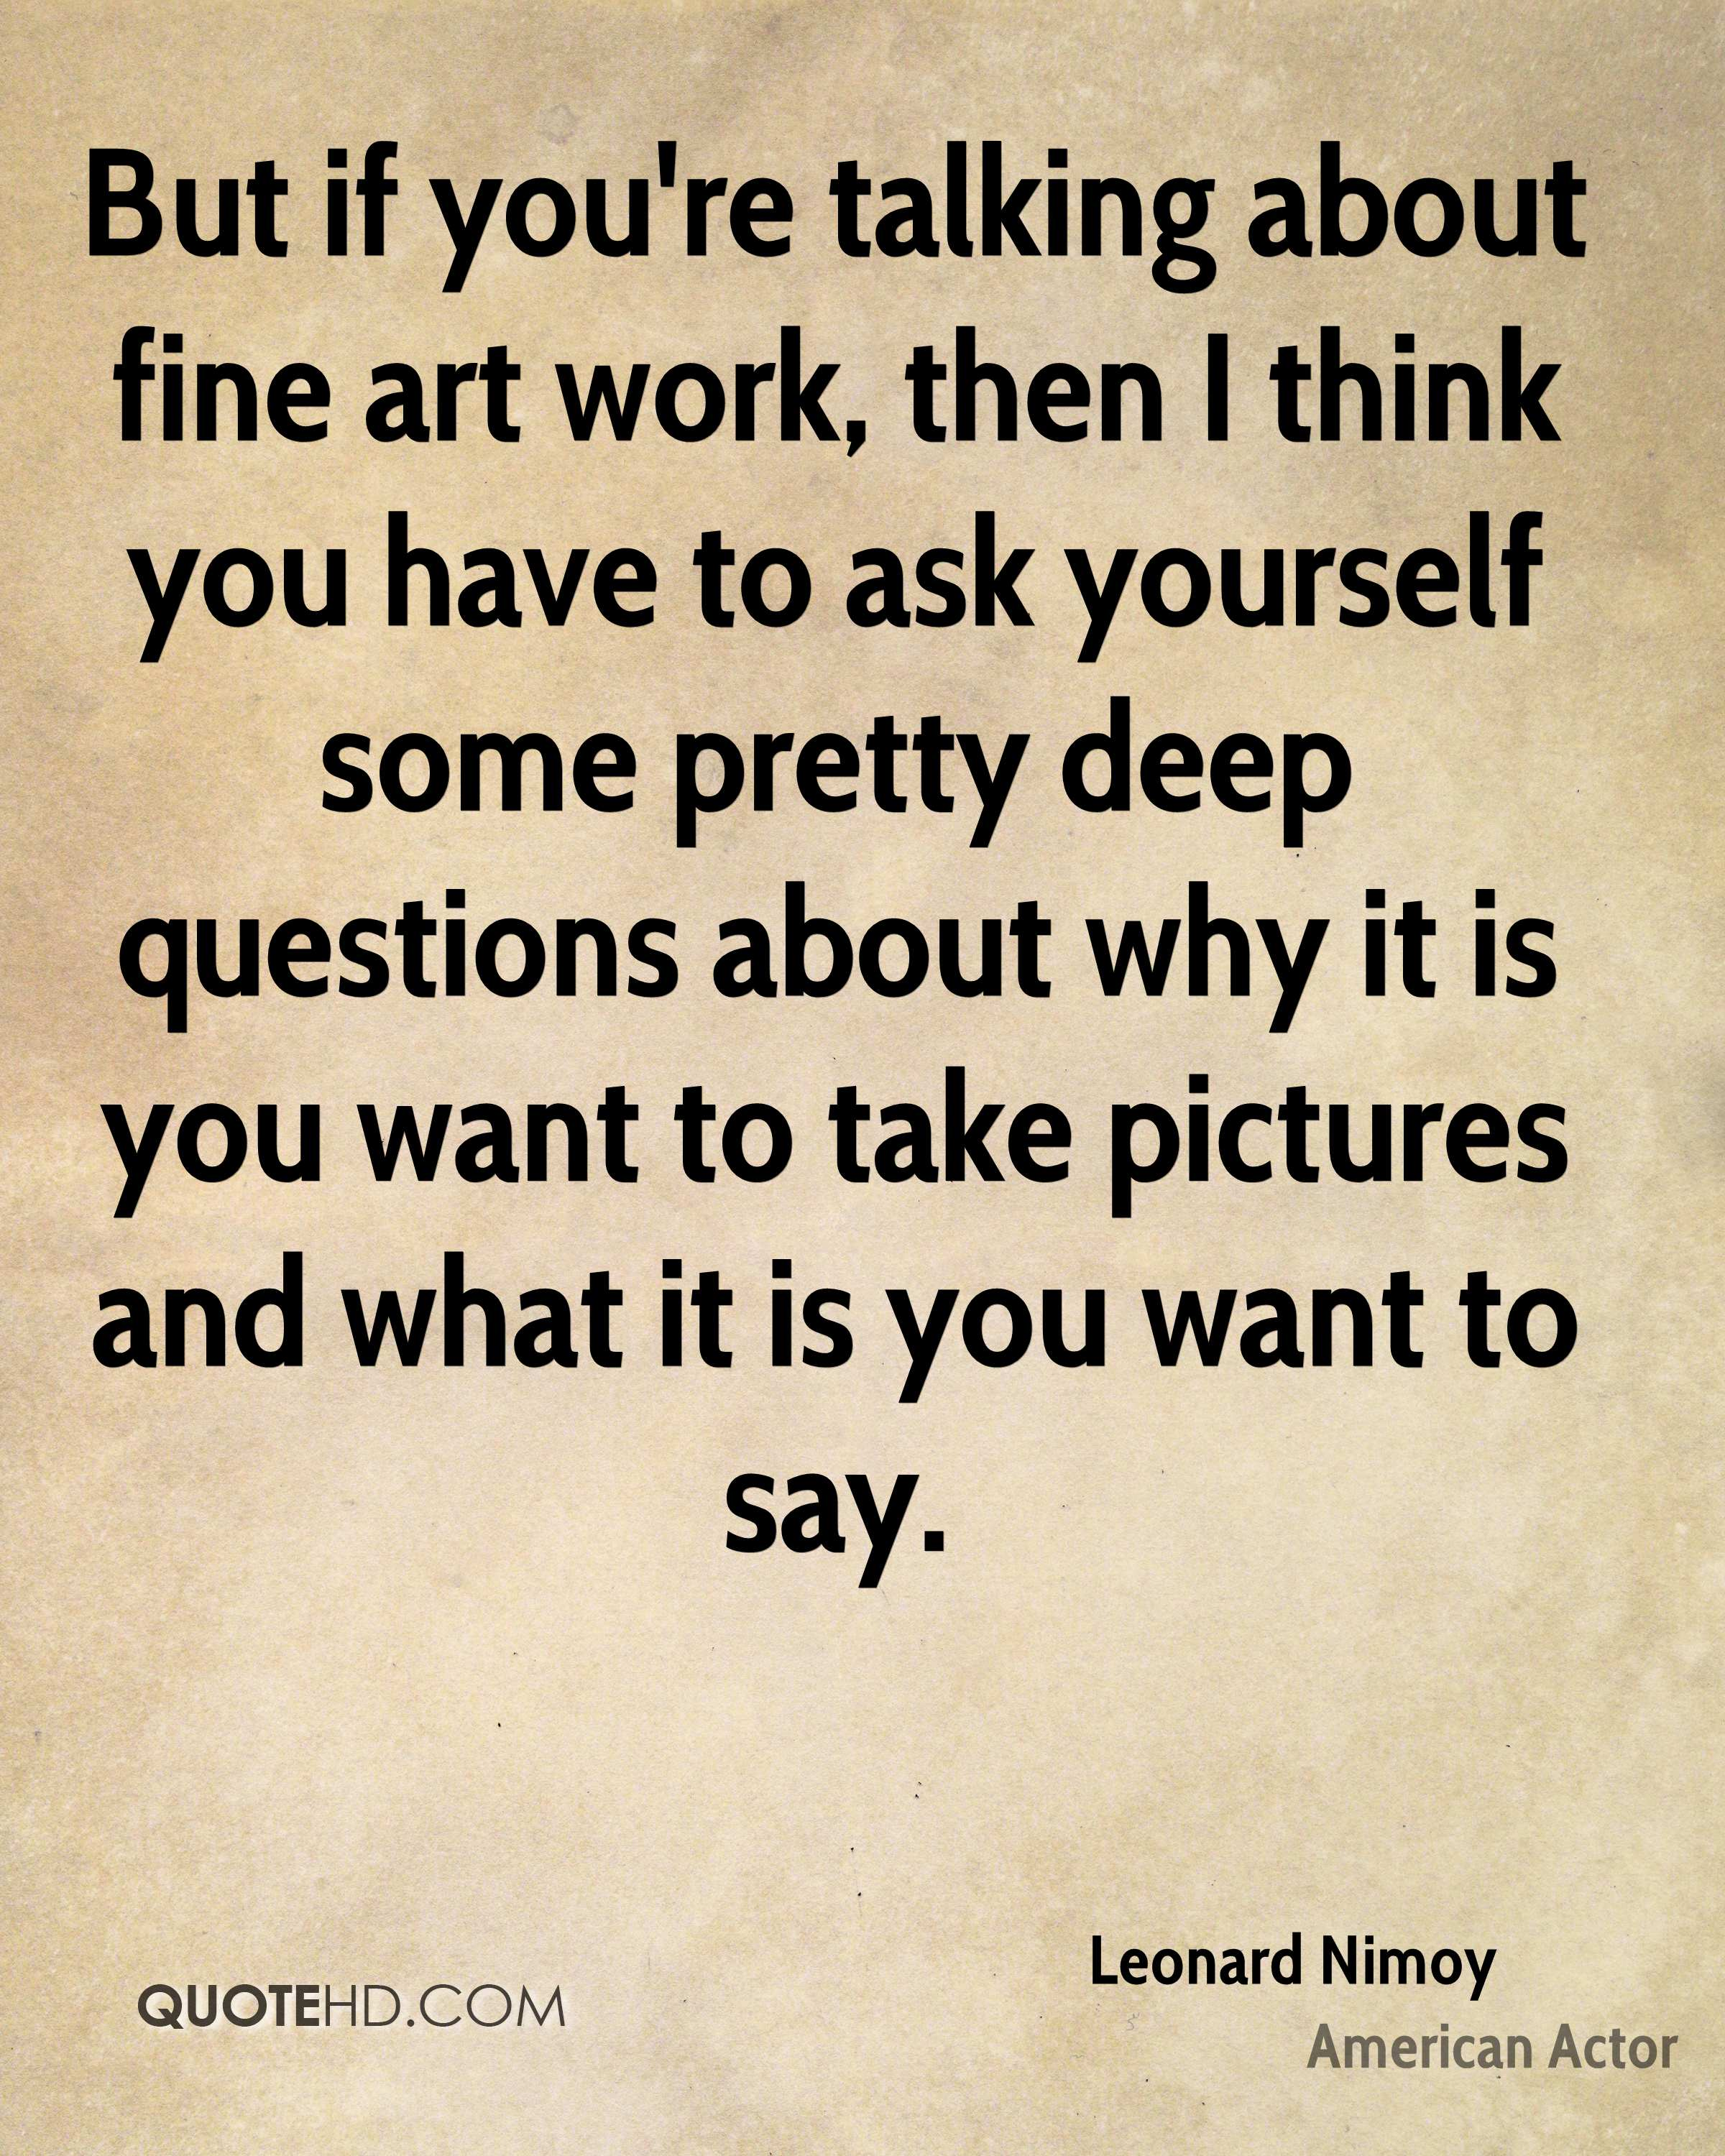 But if you're talking about fine art work, then I think you have to ask yourself some pretty deep questions about why it is you want to take pictures and what it is you want to say.